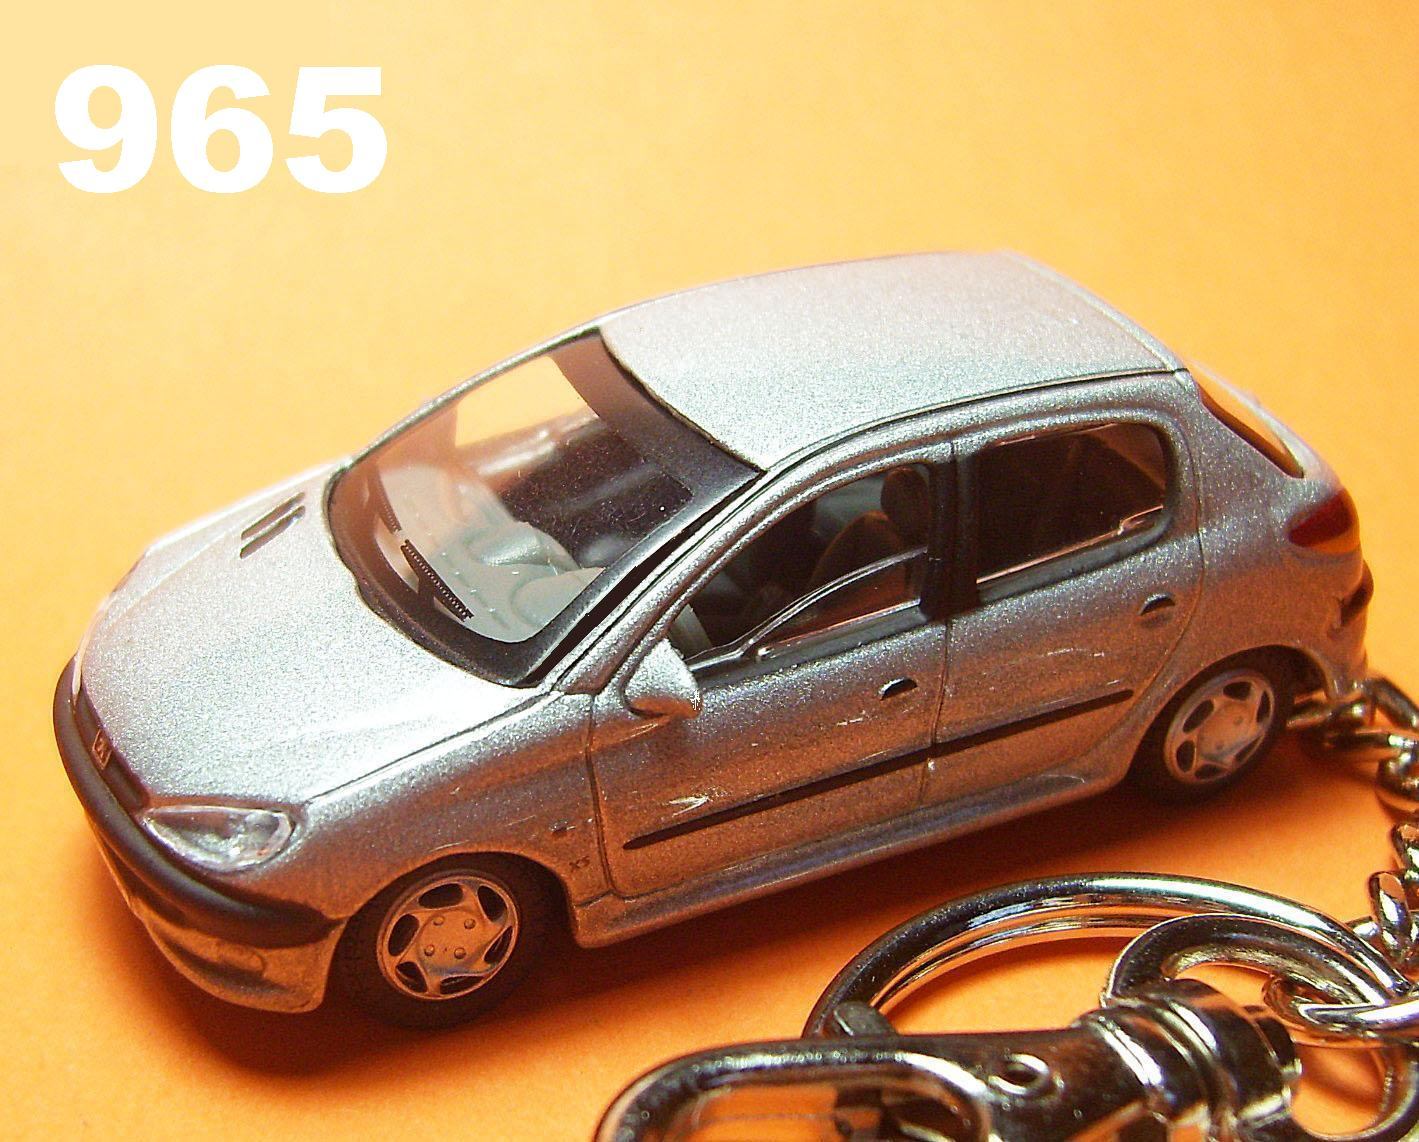 Custom Peugeot 206 5drs (Silver) Die-cast Key Chain